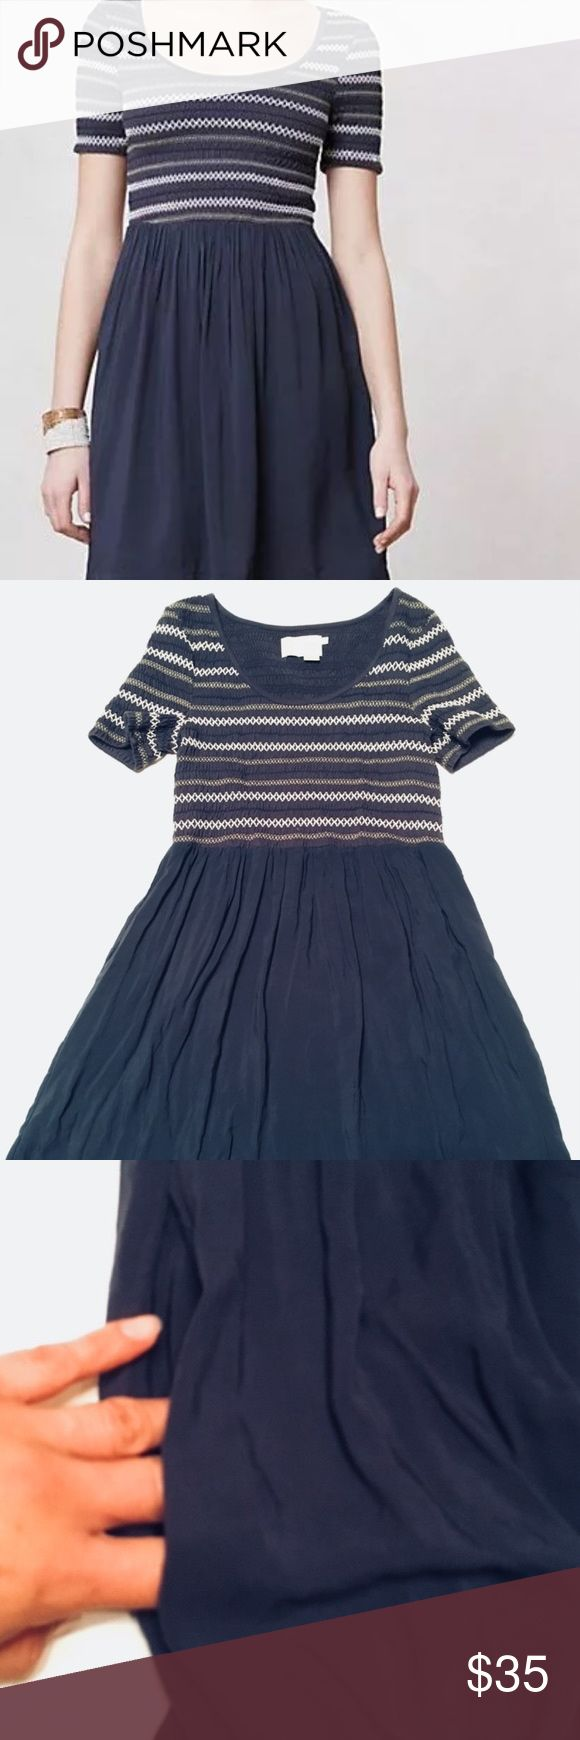 """Saturday Sunday Anthropologie Smocked Dress Excellent condition. Side pockets. Smocked stretchy top. Bust 30, length 36"""" inches long. Color is slate gray. Anthropologie Dresses Mini"""